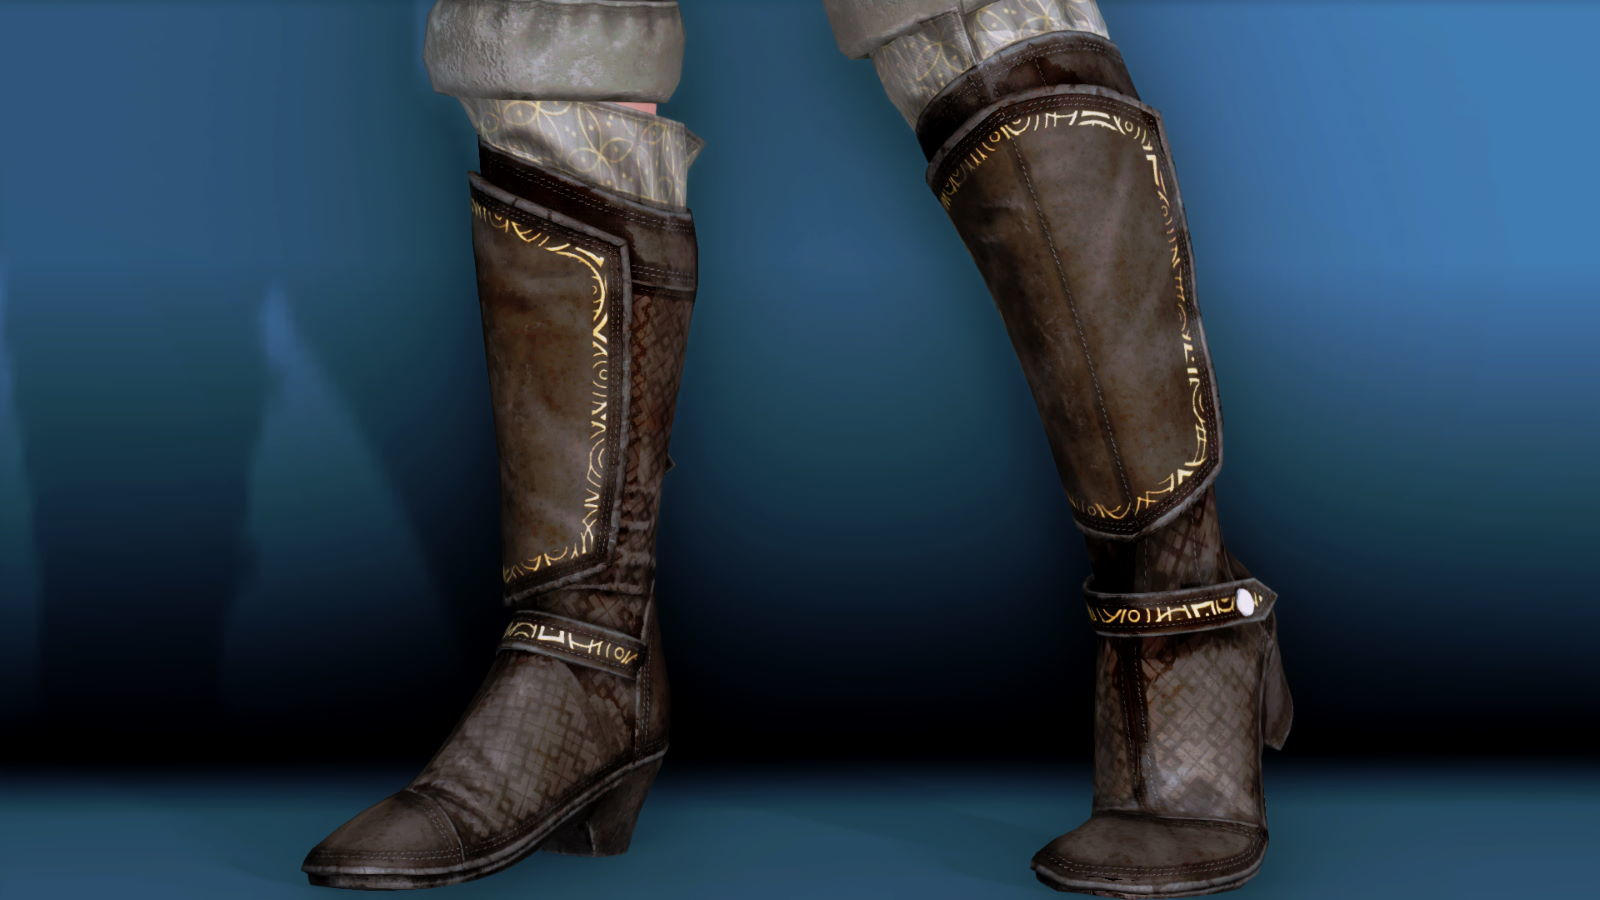 RuggedRogueSSE 420-1 Pose Boots 1